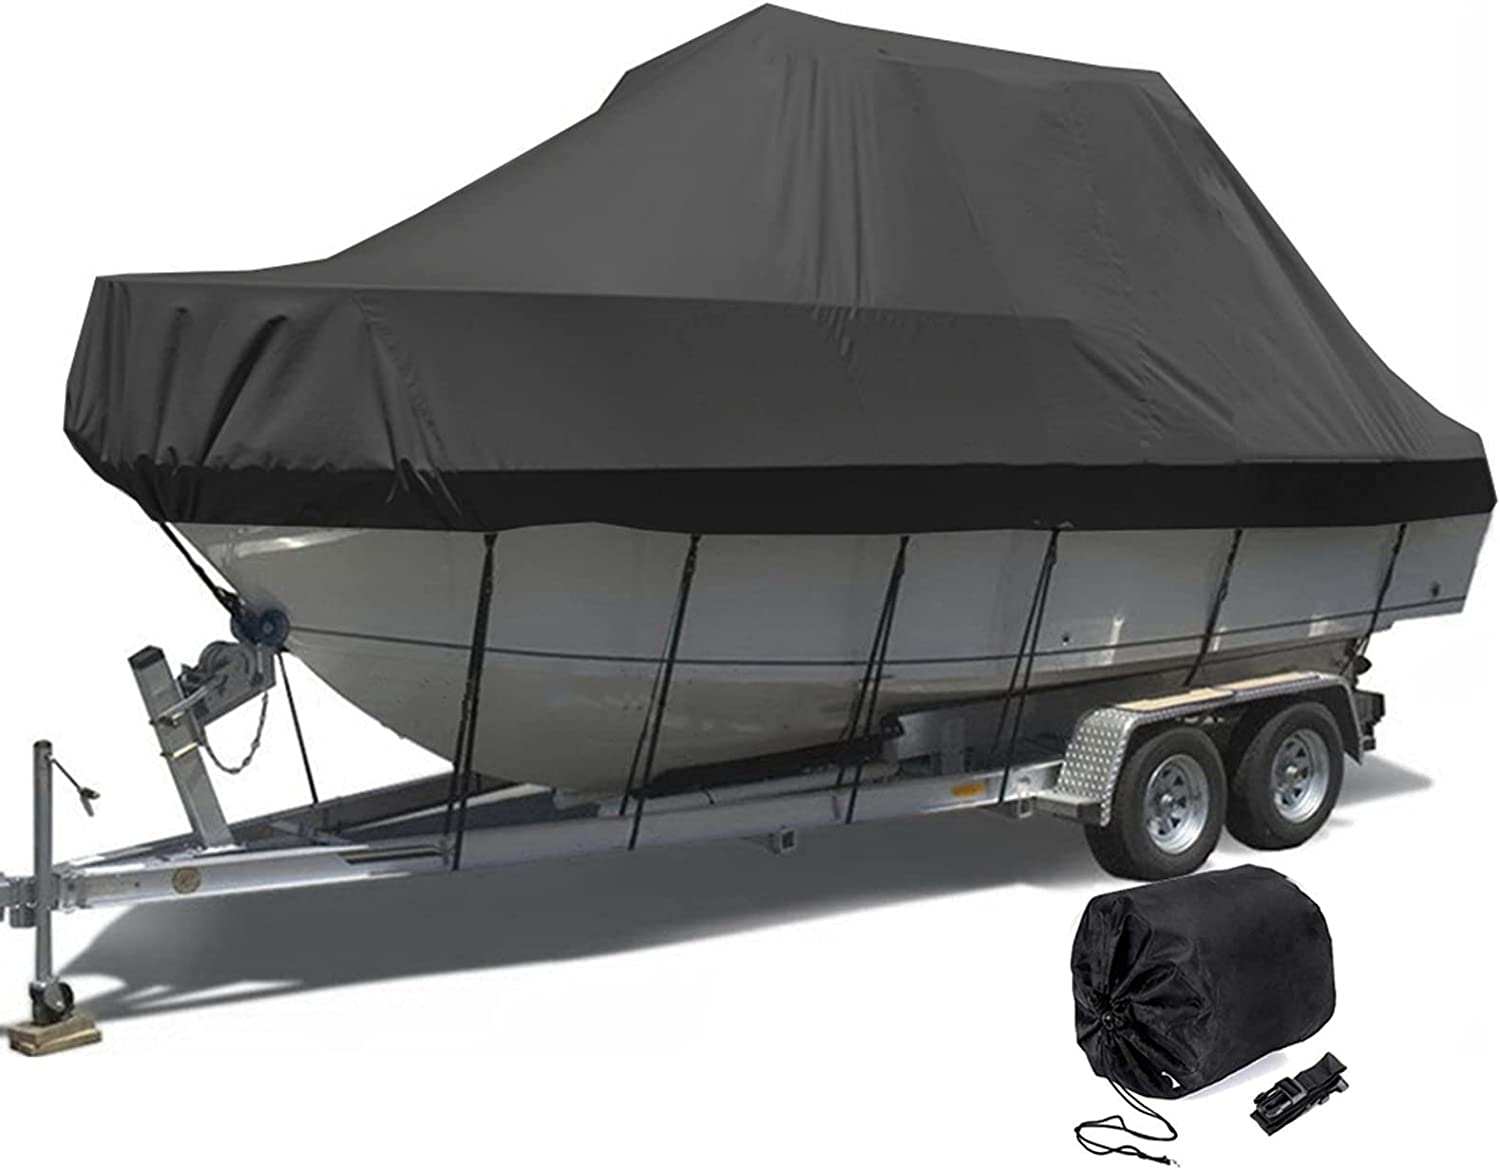 RTMXkk Trailerable Jumbo Boat Protective Manufacturer direct delivery Oxford Fabr Ranking TOP10 210D Cover